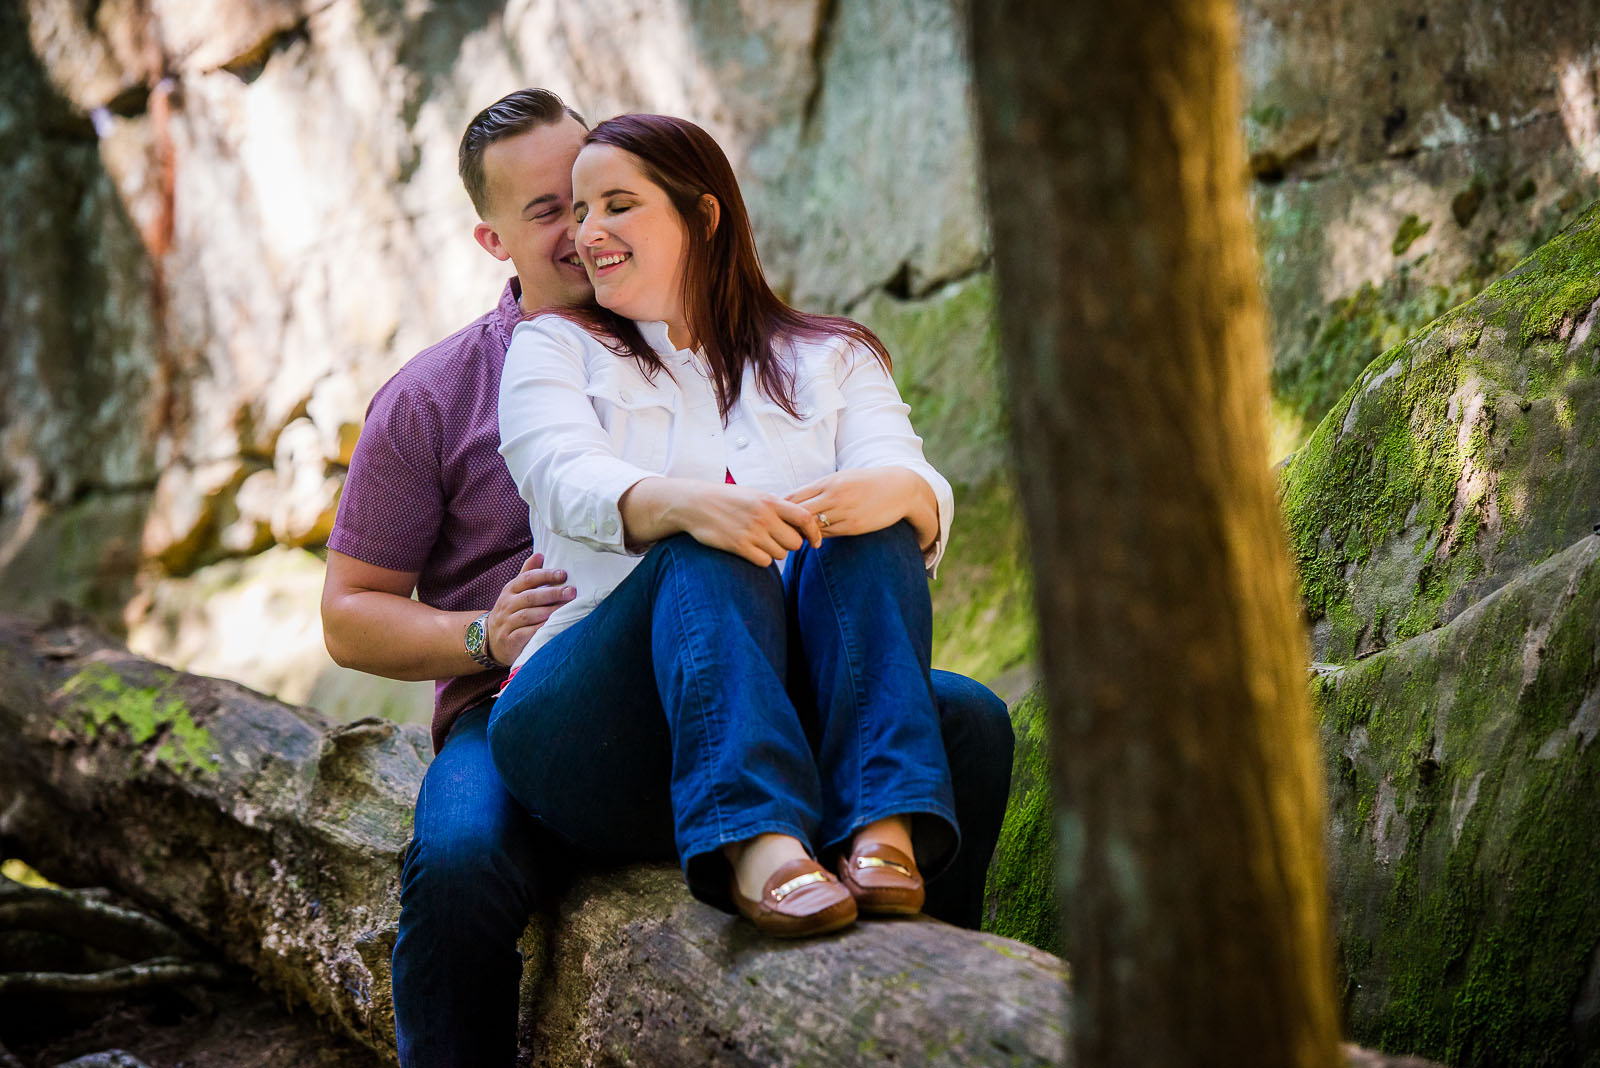 Eric_and_Christy_Photography_Blog_Paige_Eric-8